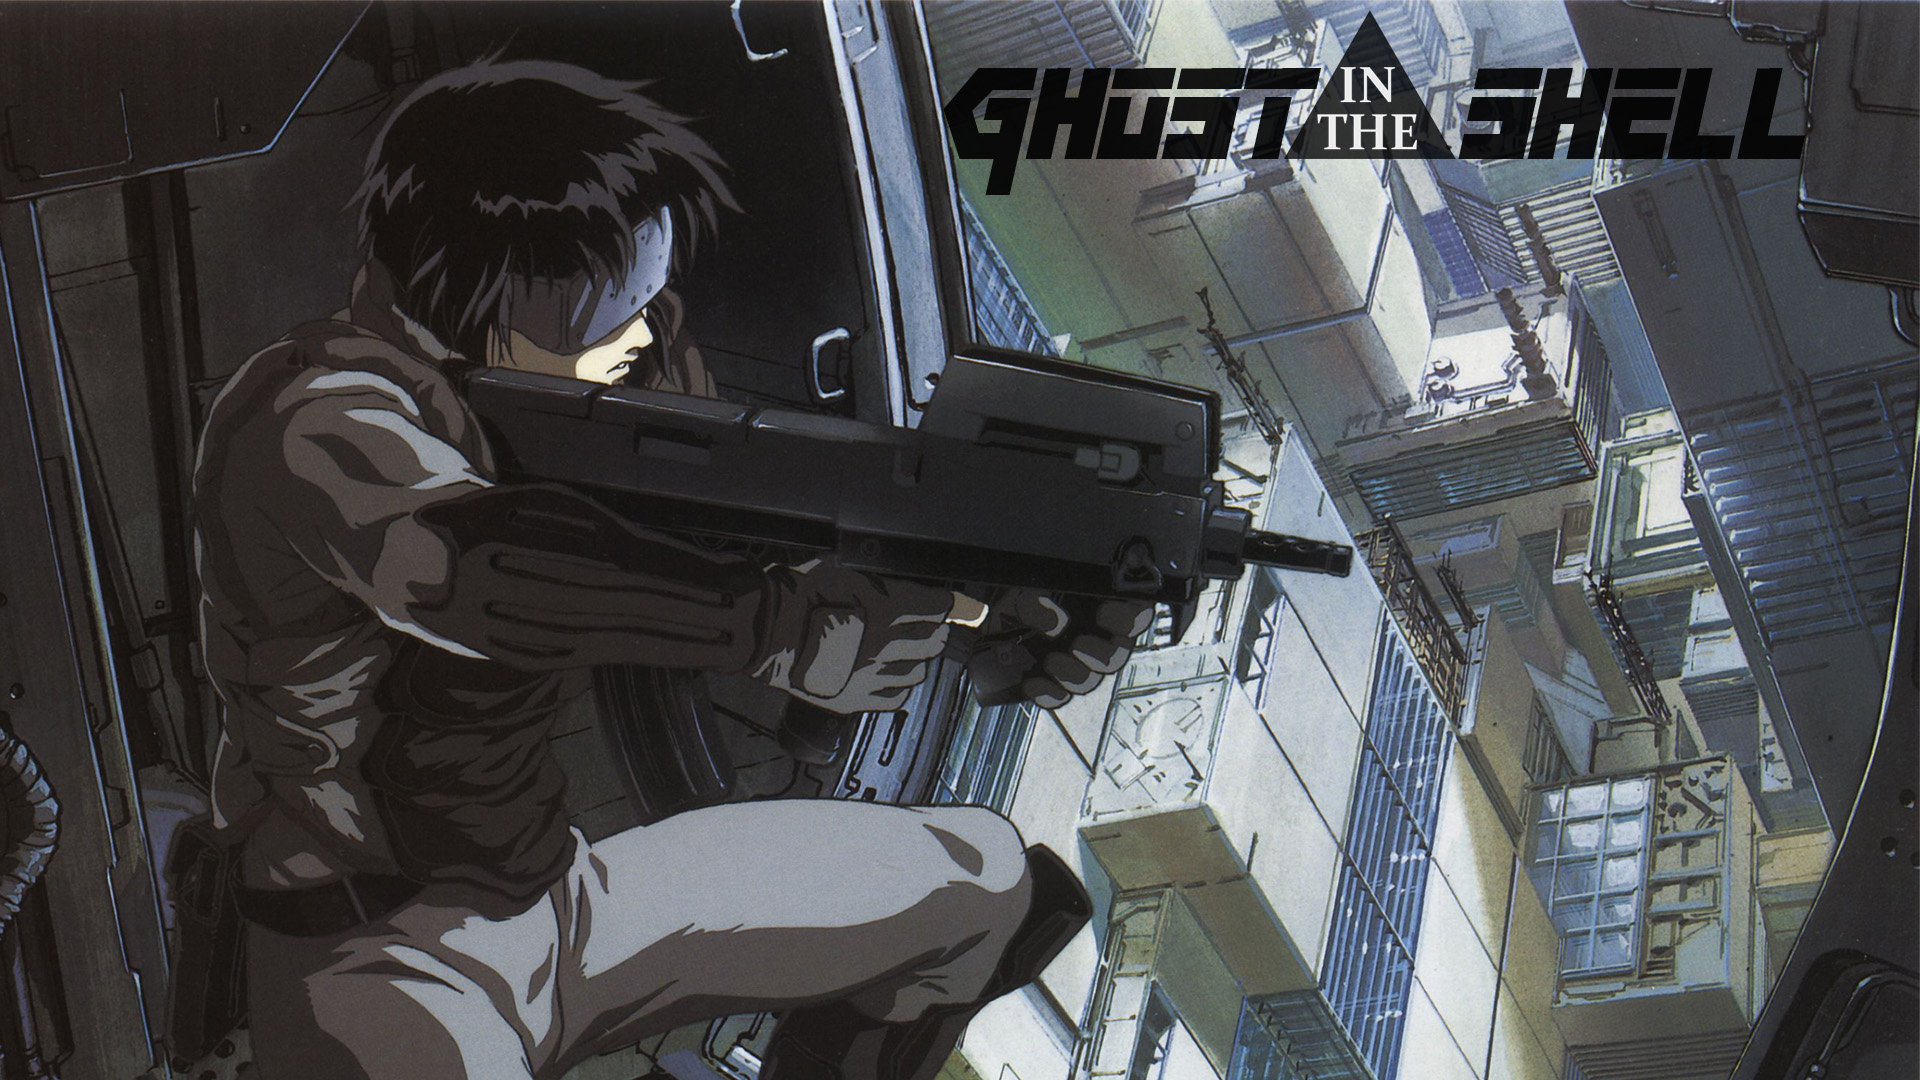 Ghost In The Shell Hd Wallpaper Background Image 1920x1080